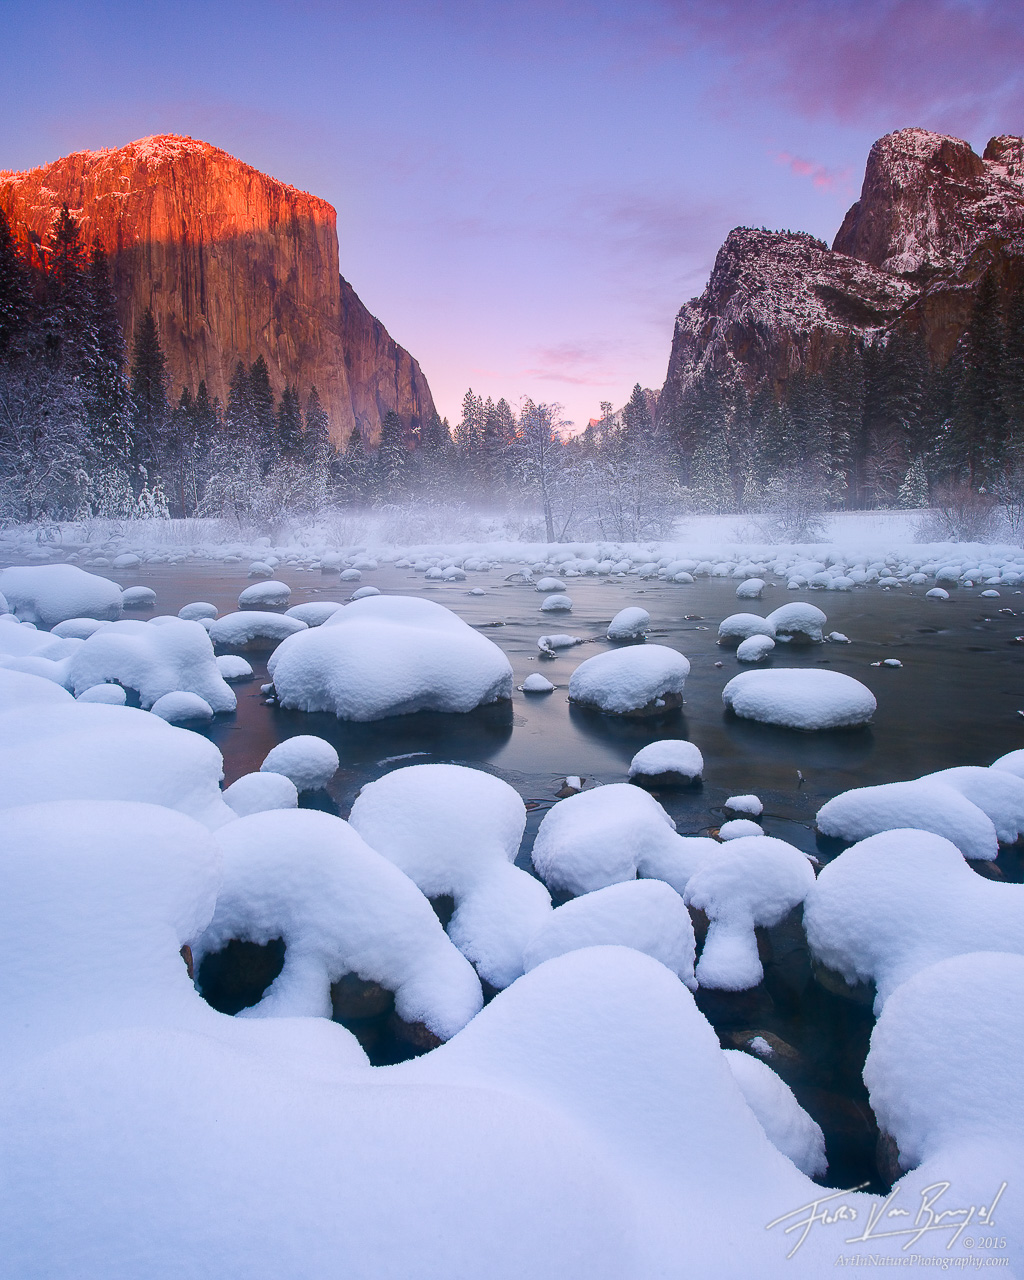 El Capitan and Merced River with Snow in Winter, Yosemite National Park, California, snow pillows, photo